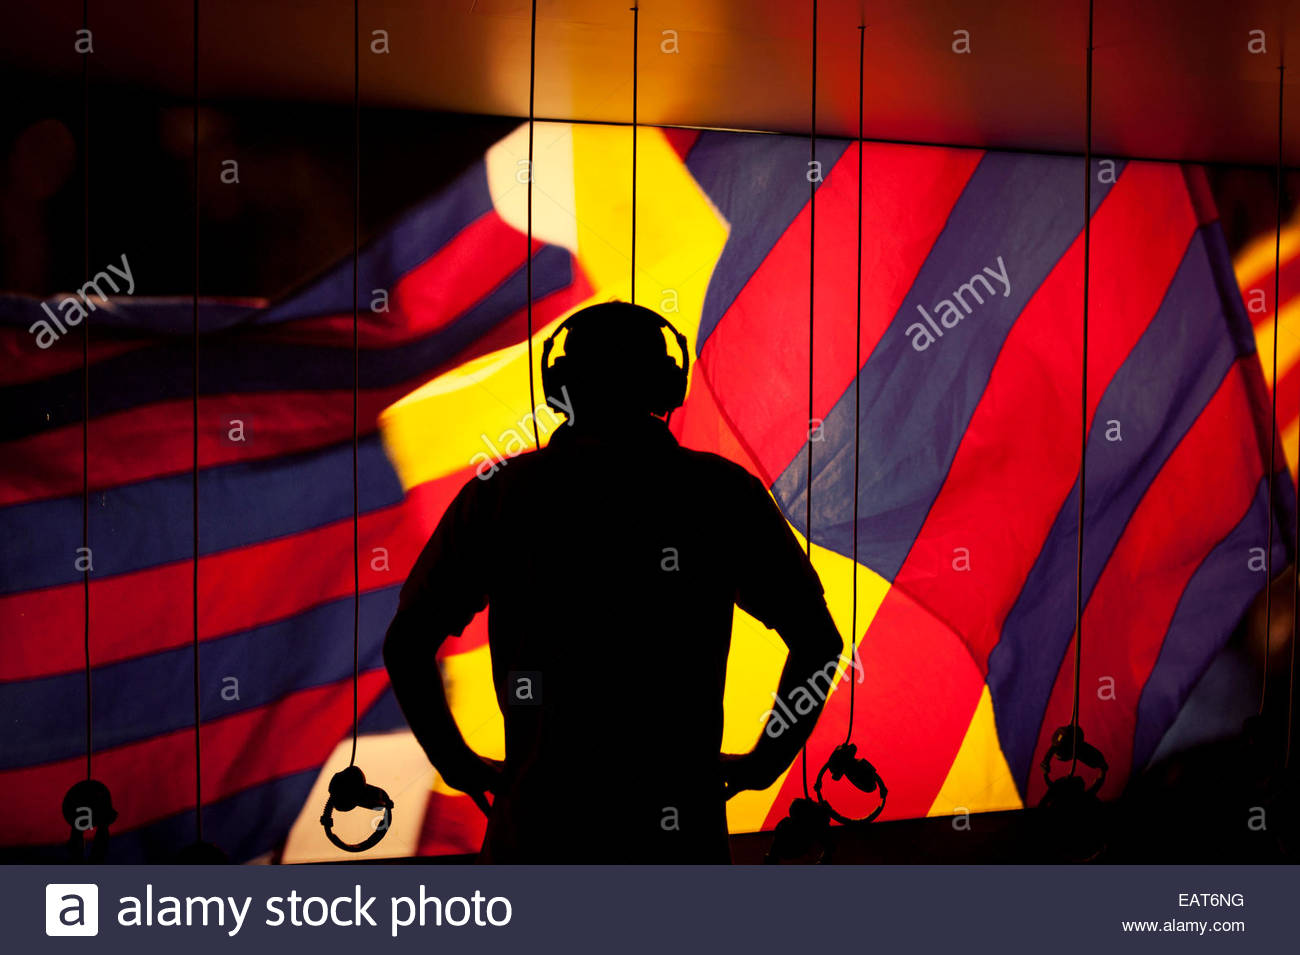 A man listening to earphones at the Futbol Club Barcelona's Barca Museum. - Stock Image